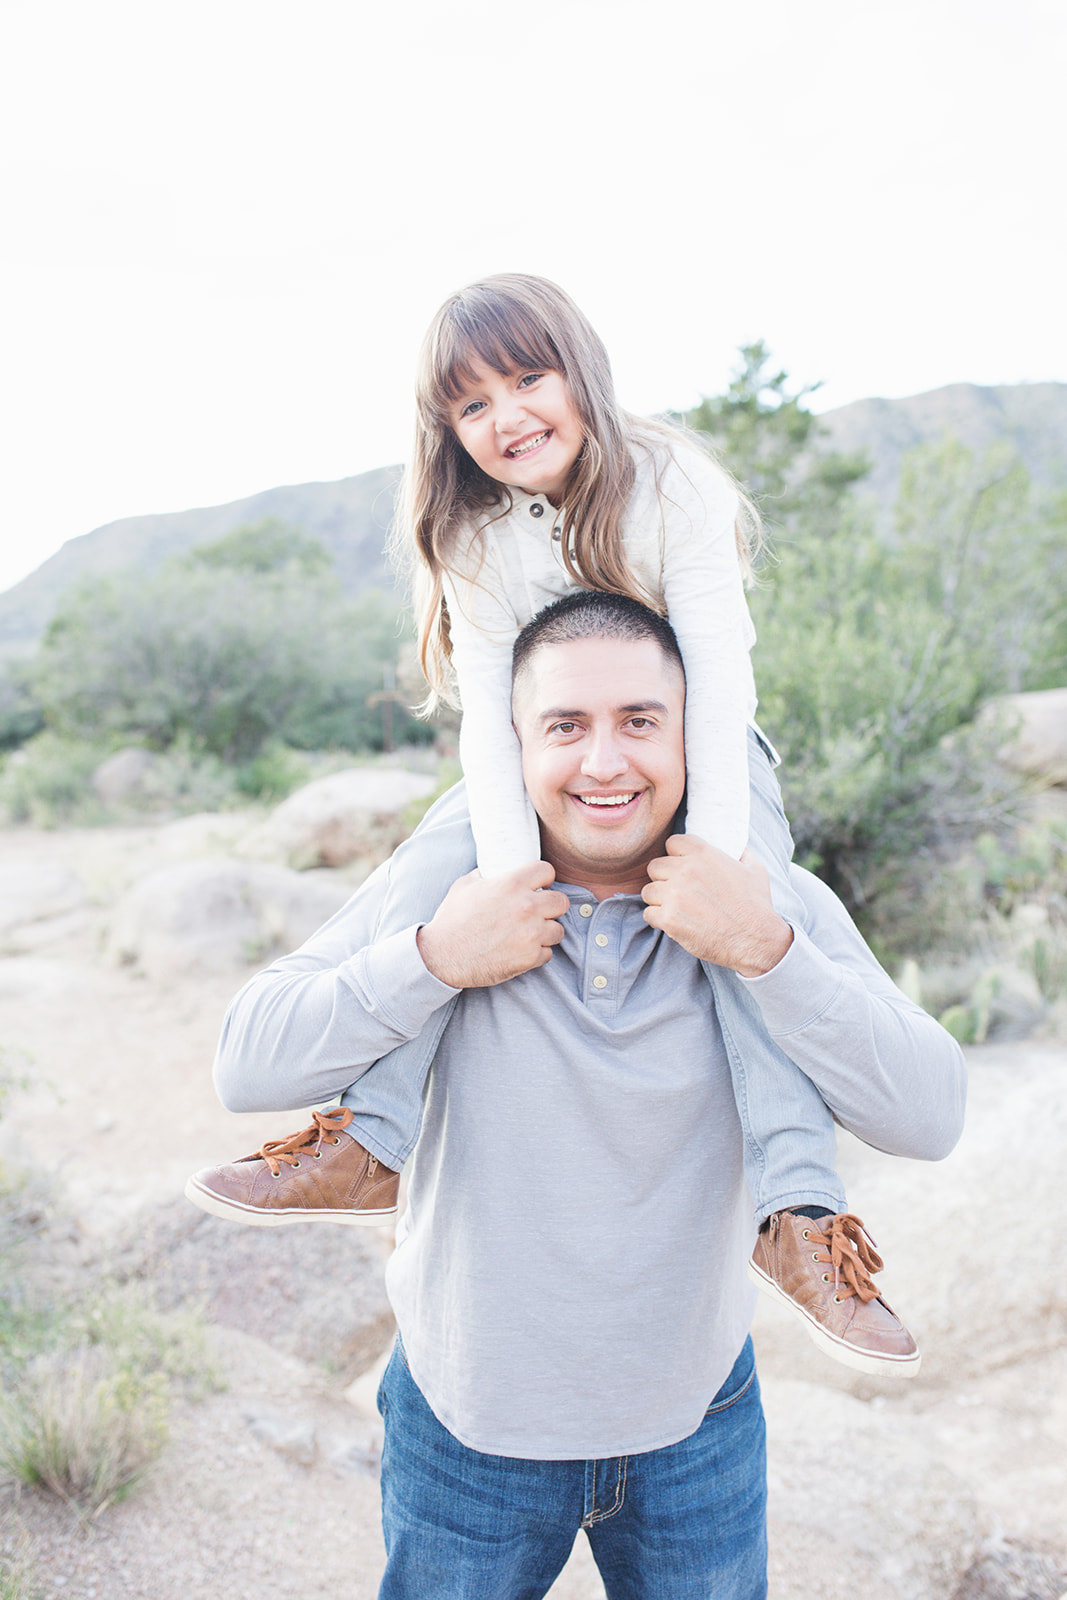 Albuquerque Outdoors Family Photographer_www.tylerbrooke.com_Kate Kauffman_009